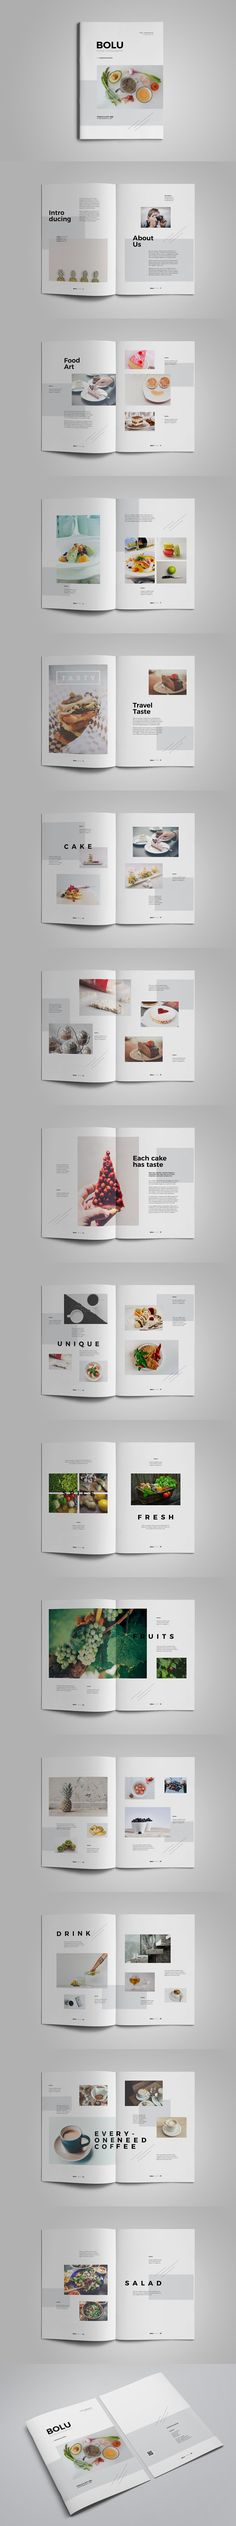 Food Photography Brochure Template InDesign INDD 30 unique pages & Letter - Fiverr Outsource - Outsource your work on Fiverr and save your time. - Food Photography Brochure Template InDesign INDD 30 unique pages & Letter sizes Brochure Mockup, Template Brochure, Design Brochure, Brochure Layout, Brochure Food, Product Brochure, Company Brochure, Brochure Cover, Corporate Brochure